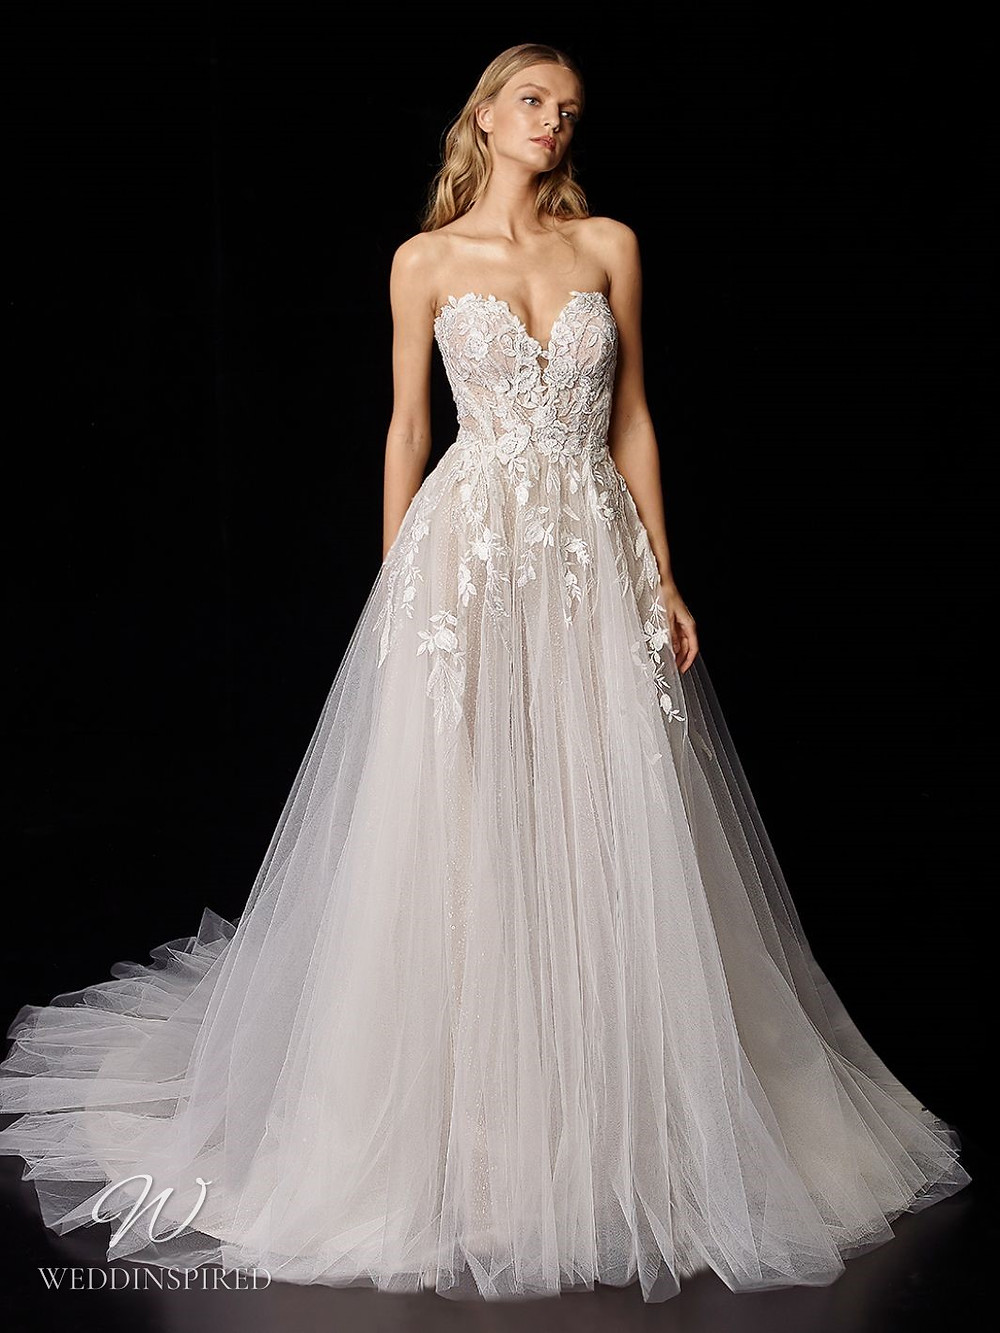 An Enzoani strapless romantic lace and tulle ball gown wedding dress with a sweetheart neckline